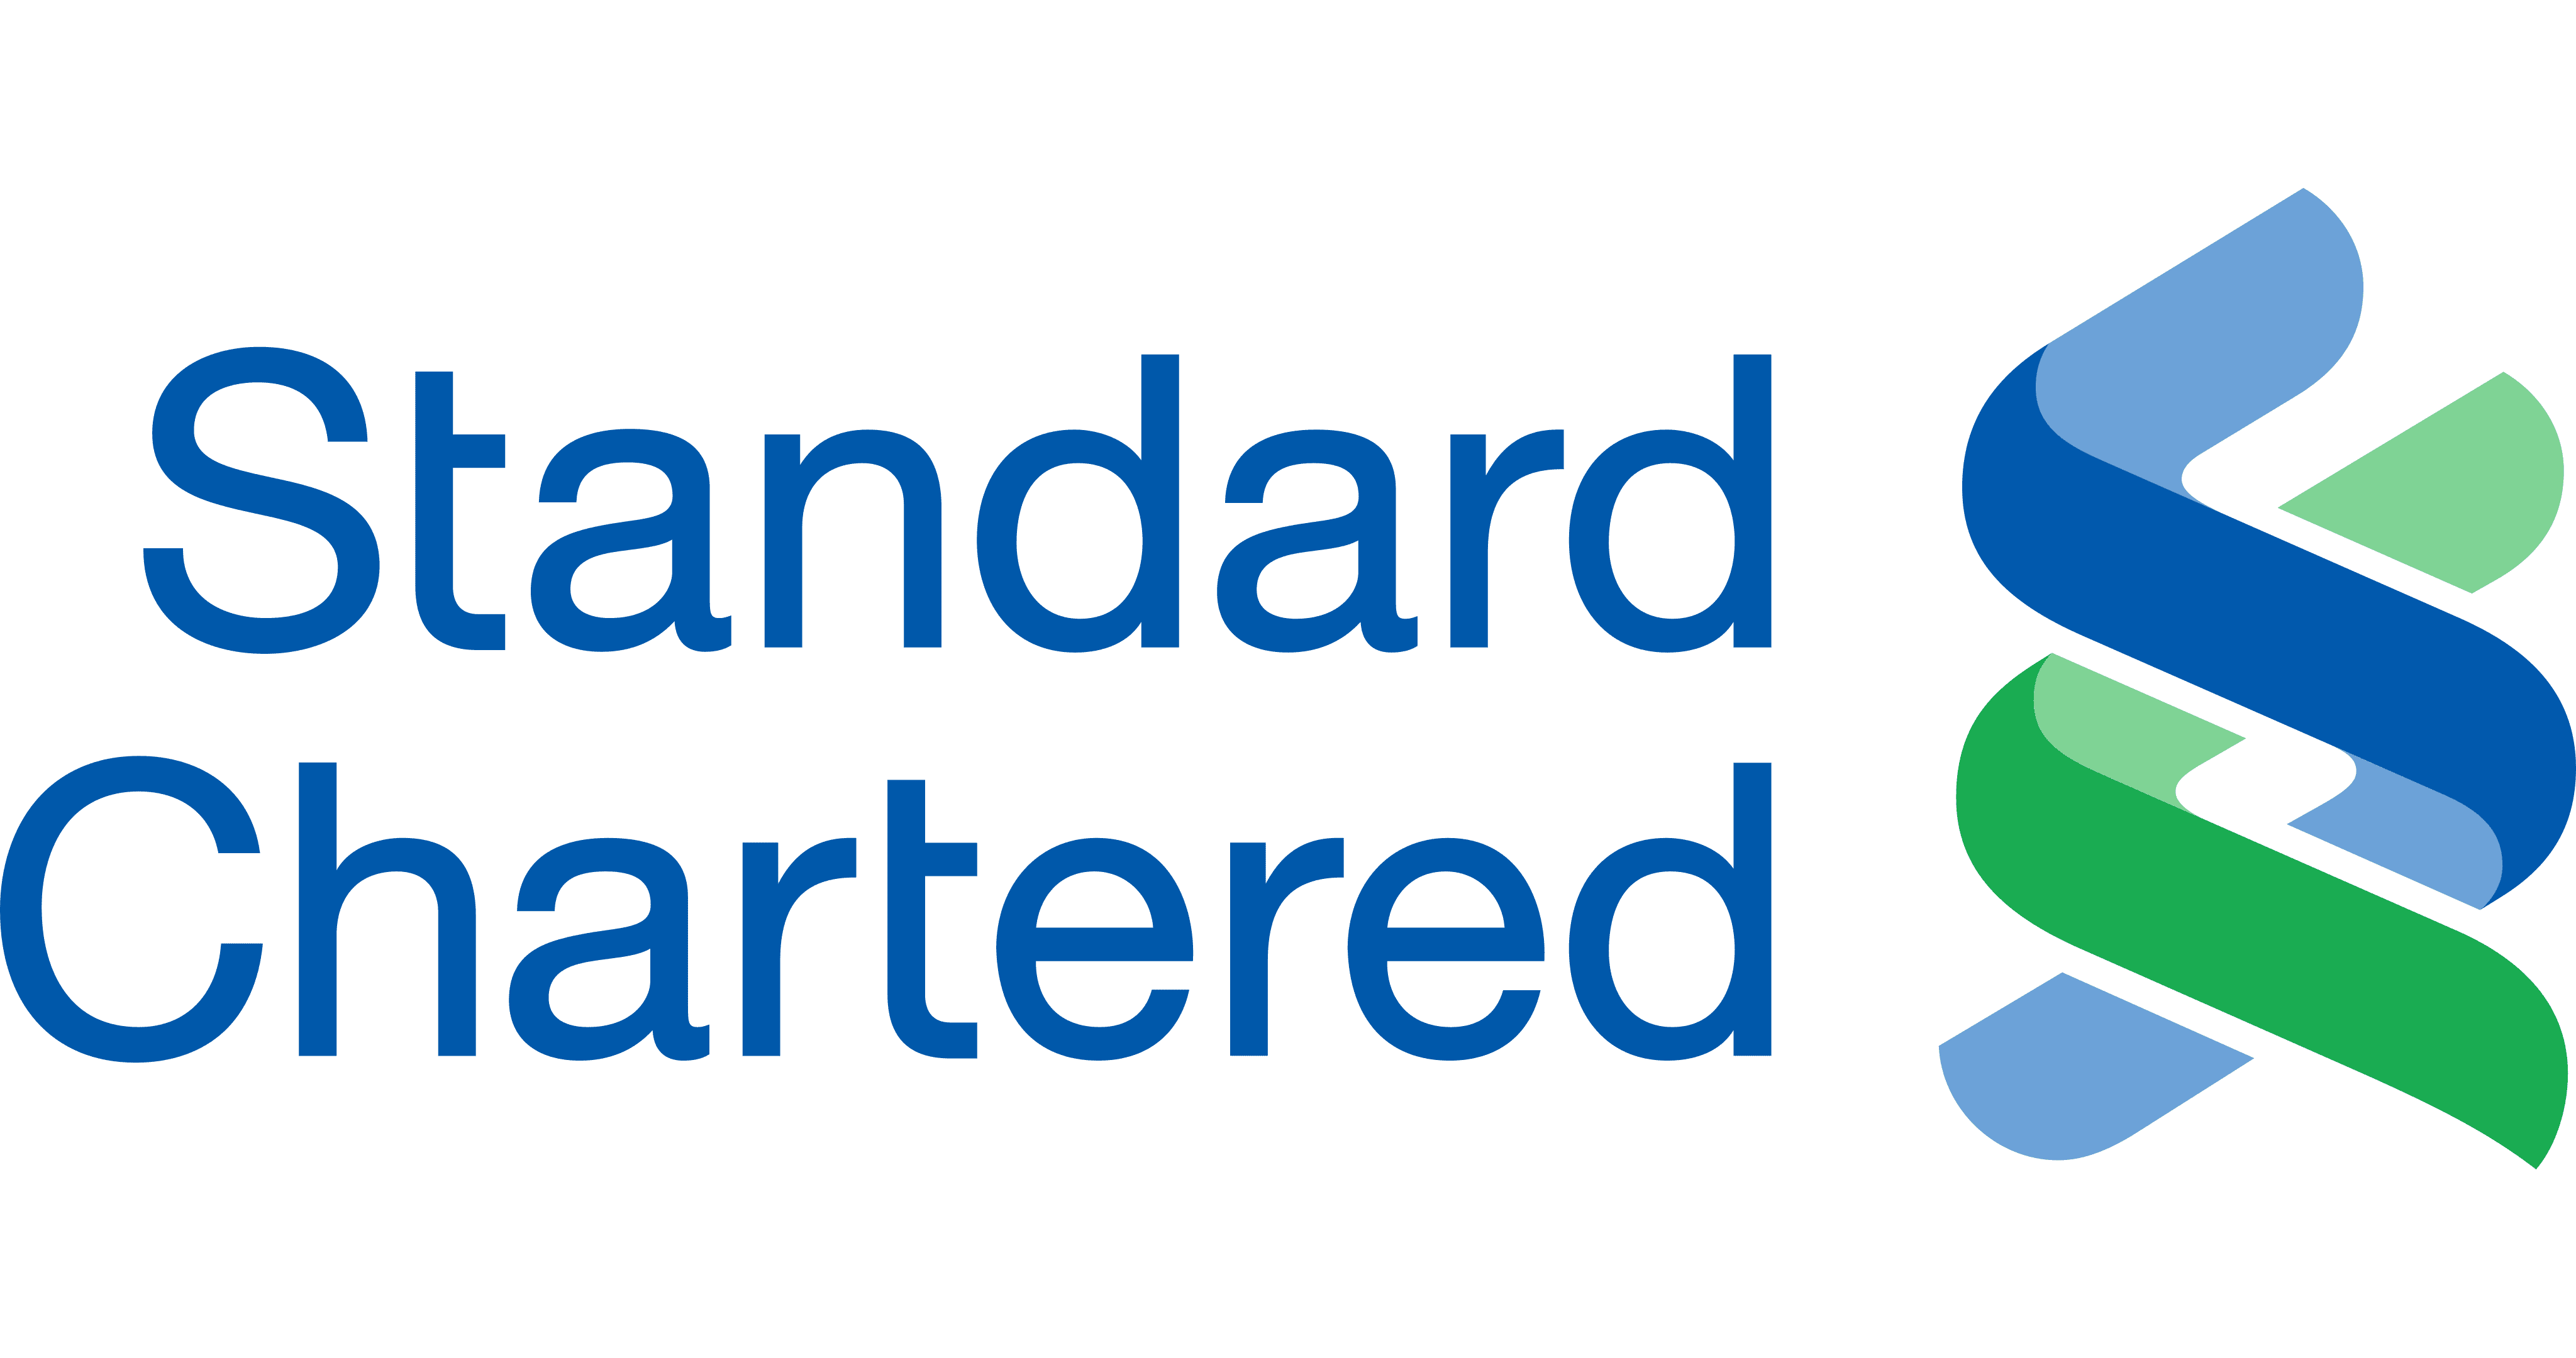 Standard Chartered logo and symbol, meaning, history, PNG